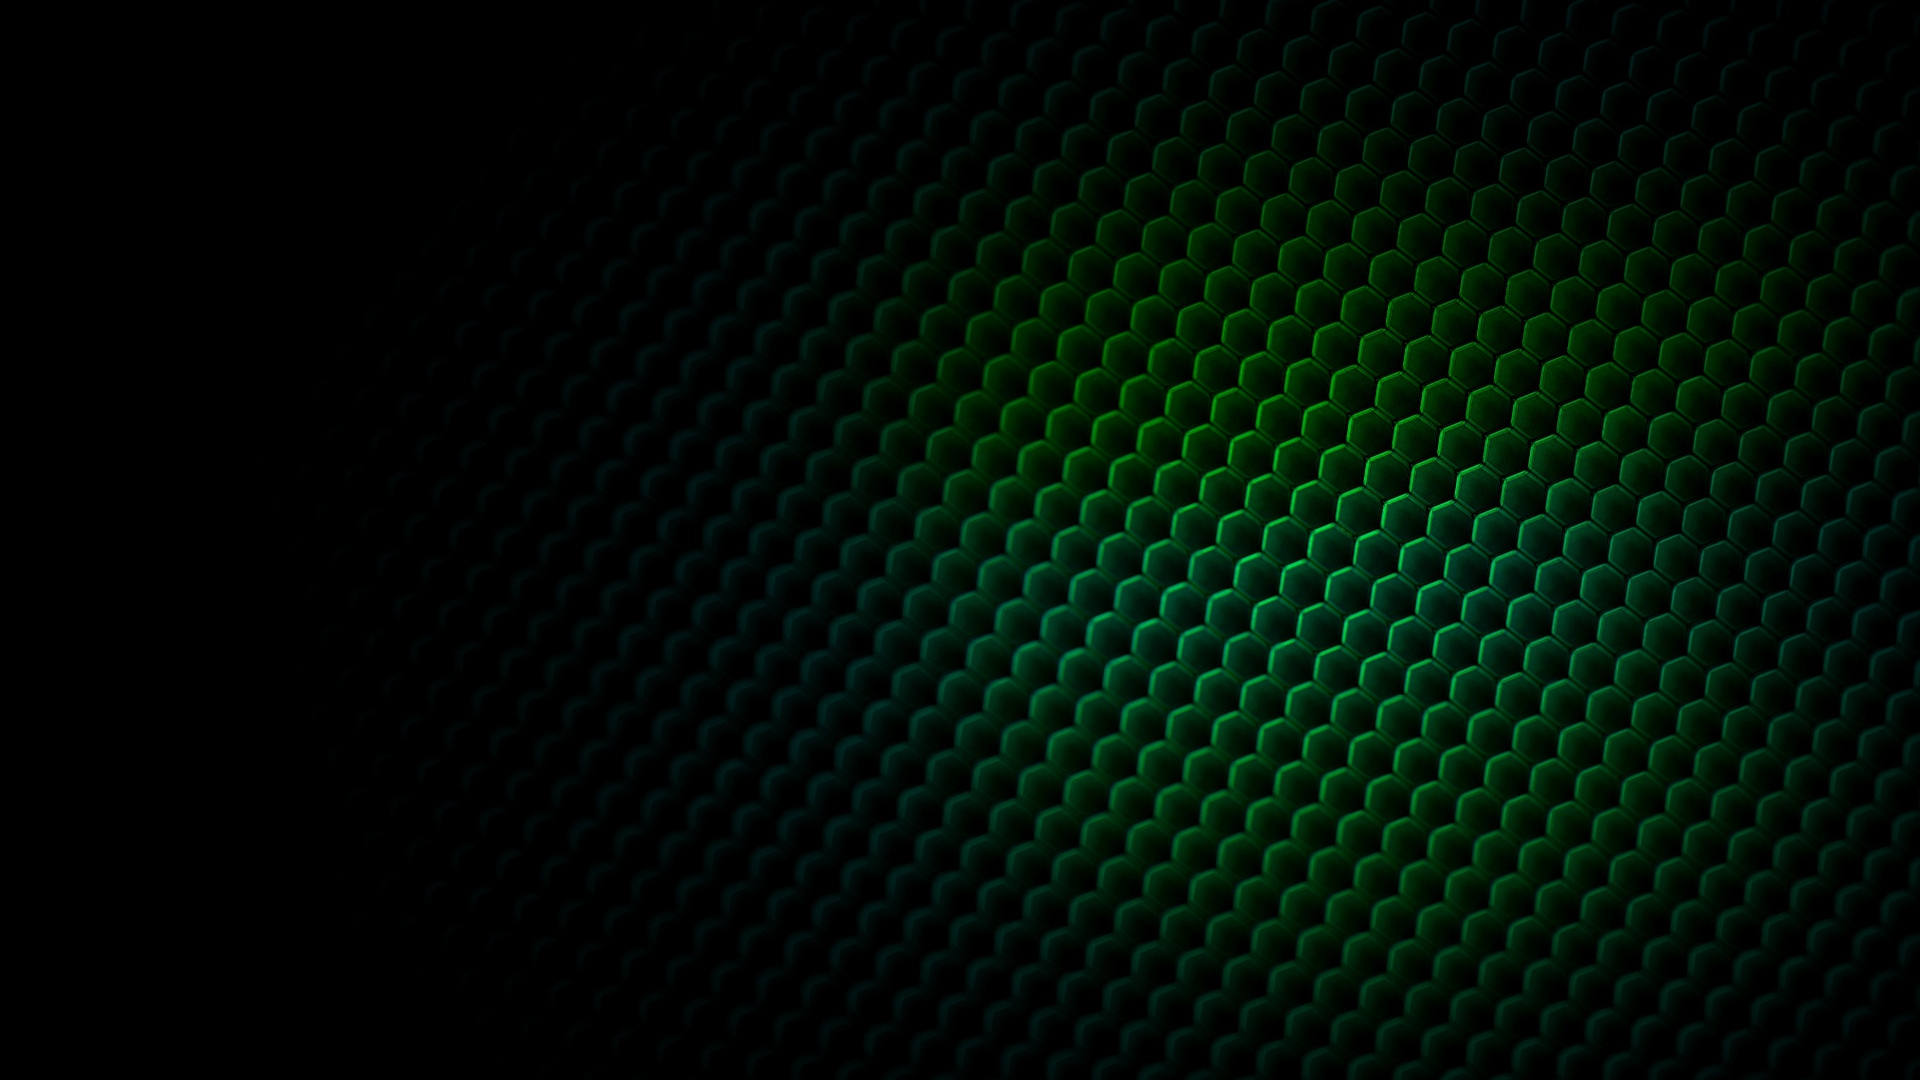 46 Dark Green Wallpaper Hd On Wallpapersafari